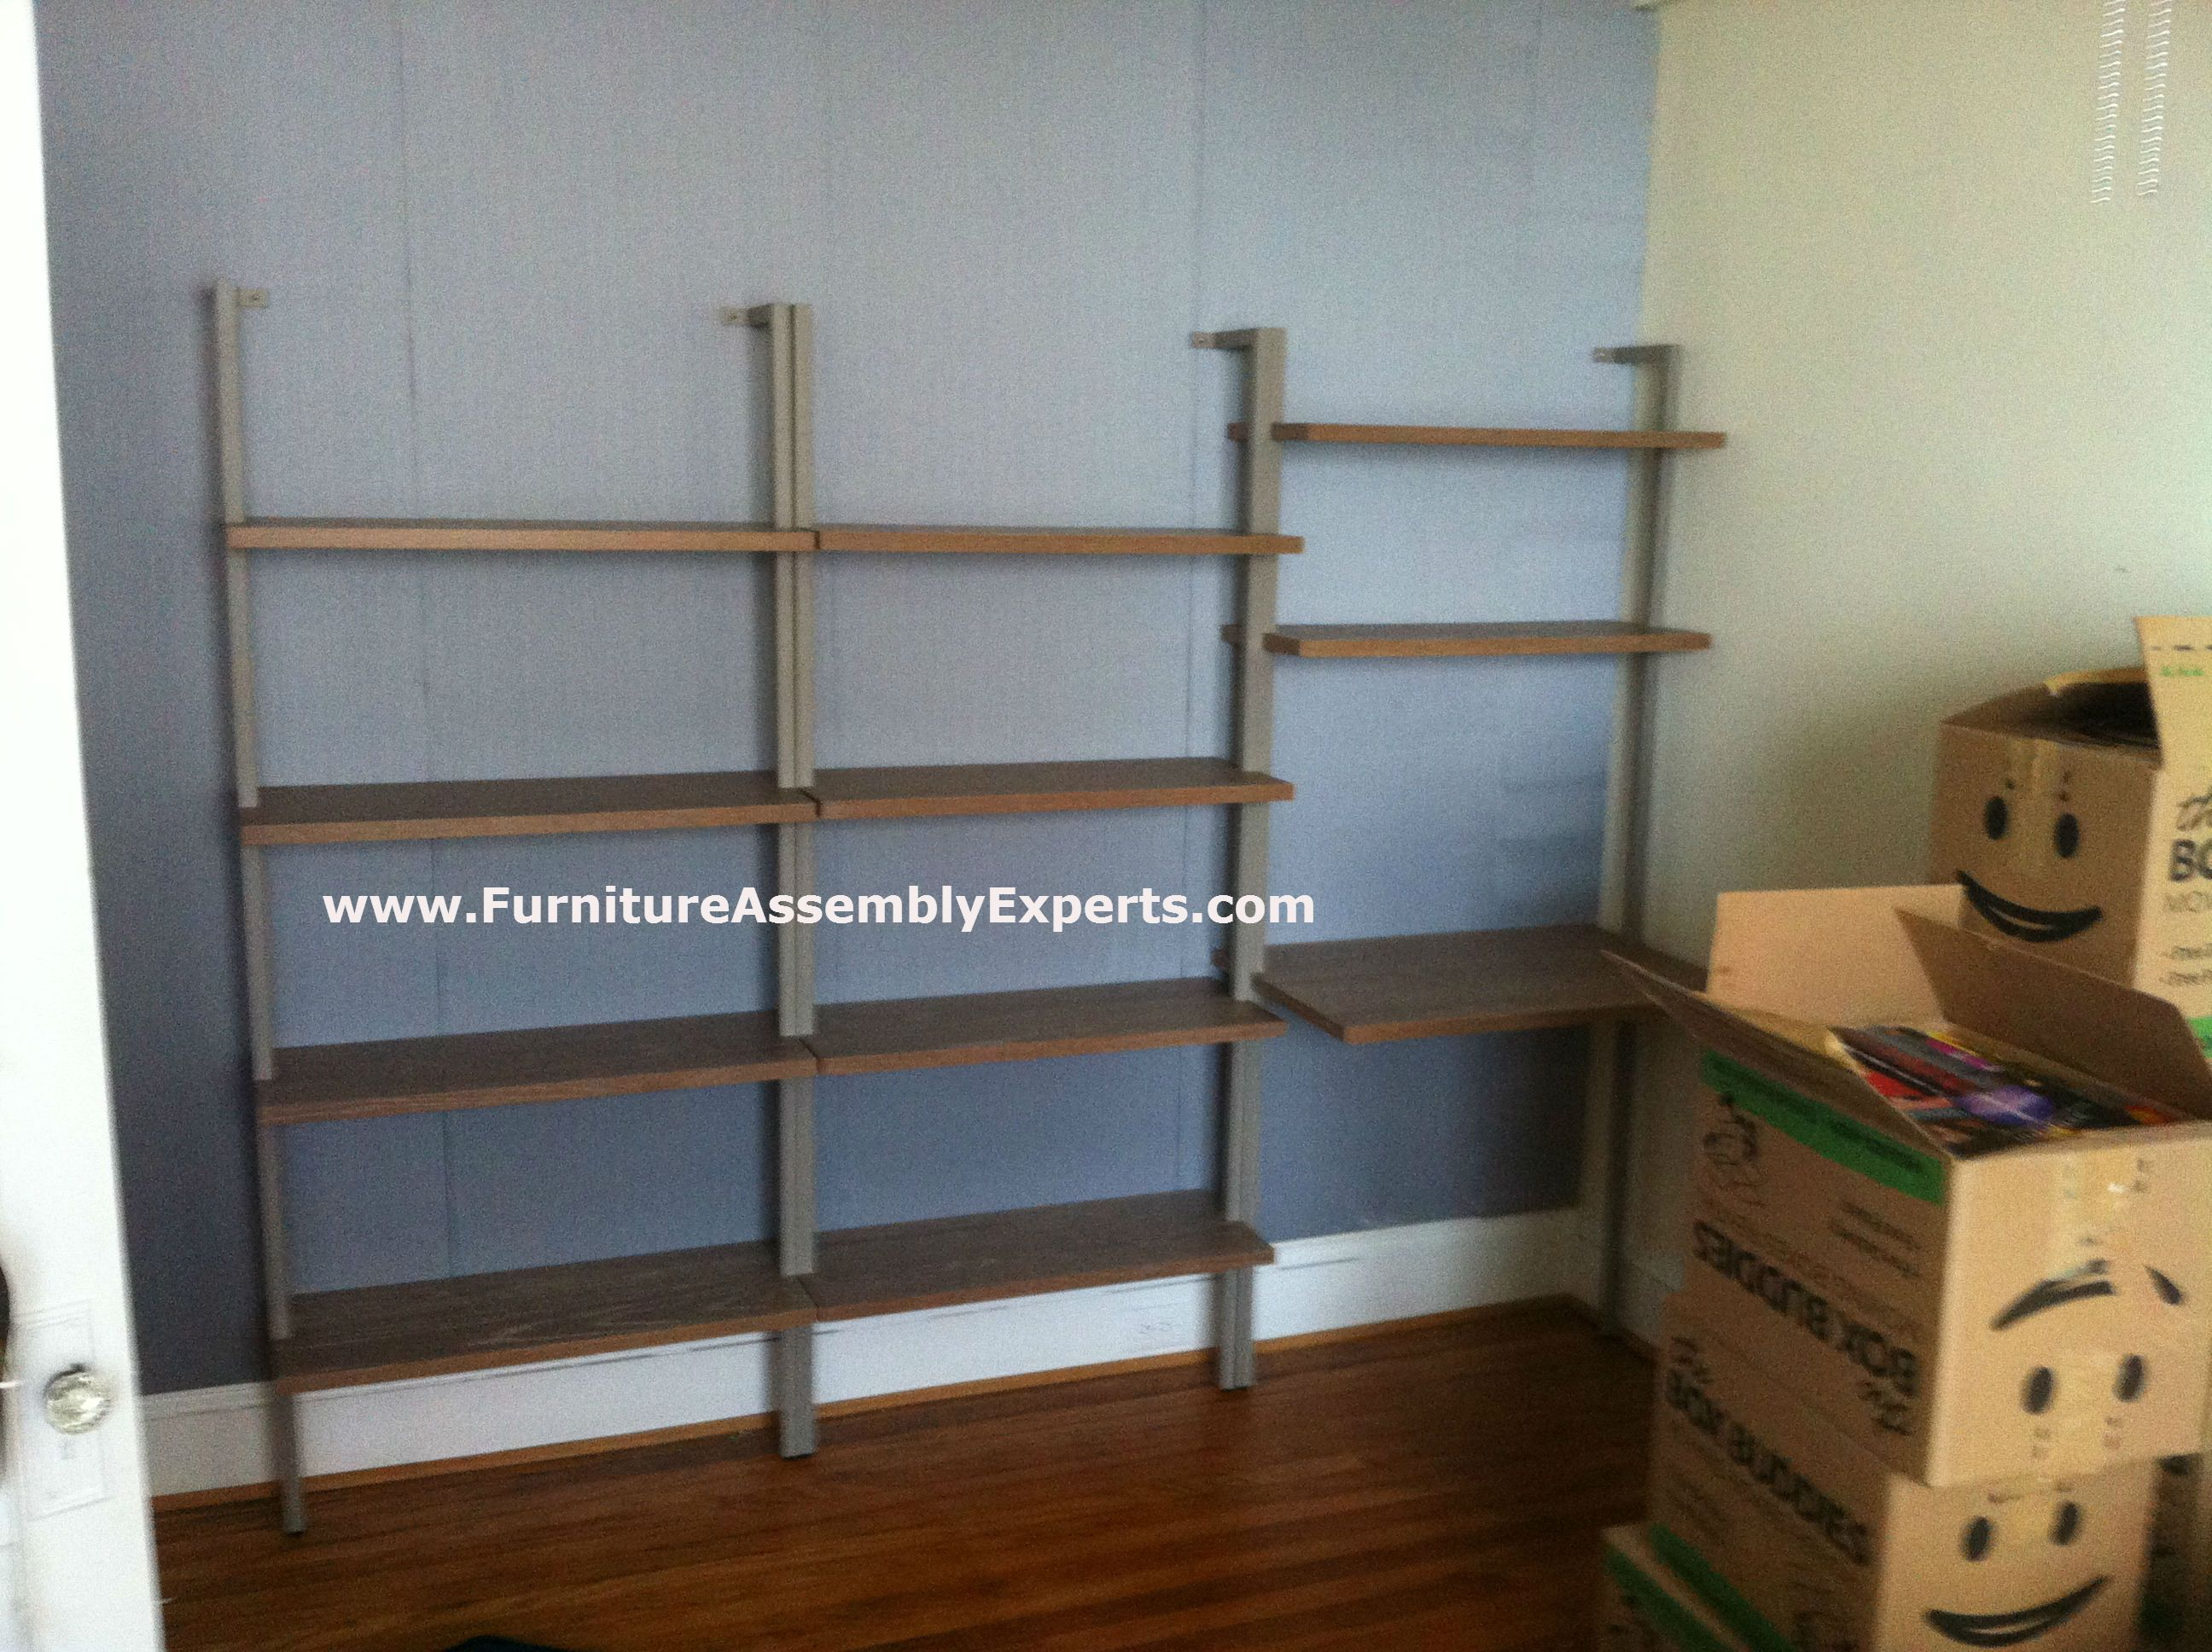 Cb2 Helix Taupe Bookcase And Desk Assembled In Washington DC By Furniture  Assembly Experts LLC